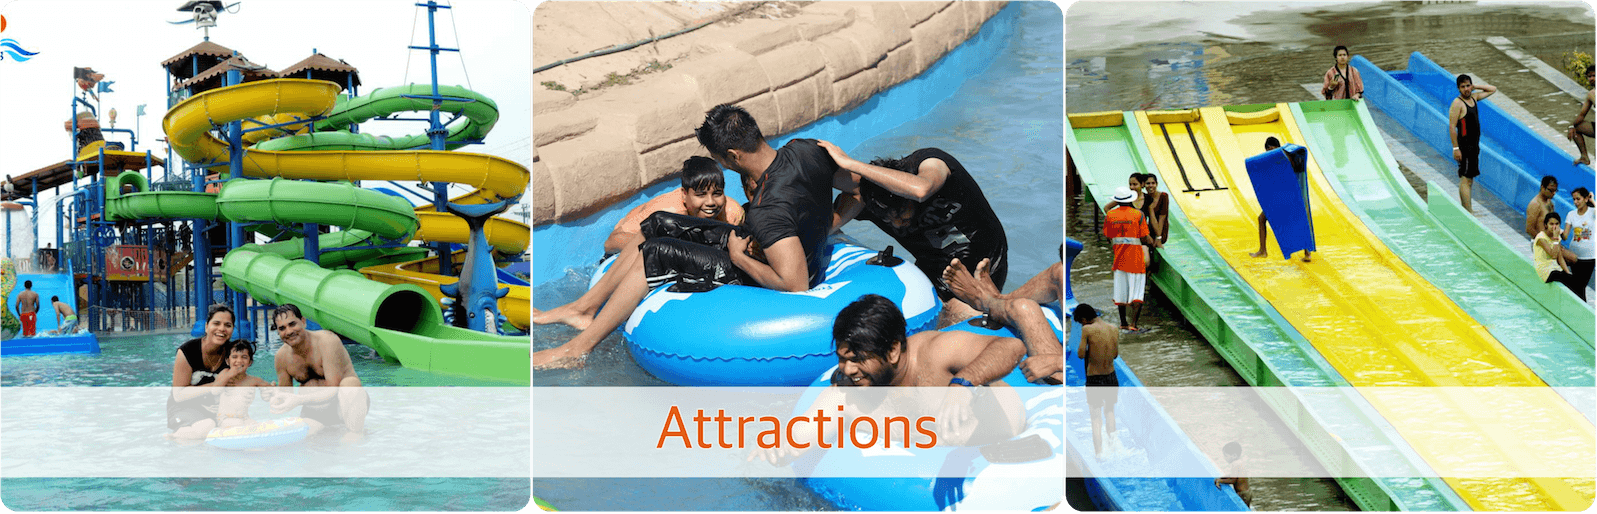 Attractions-at-appu-ghar.